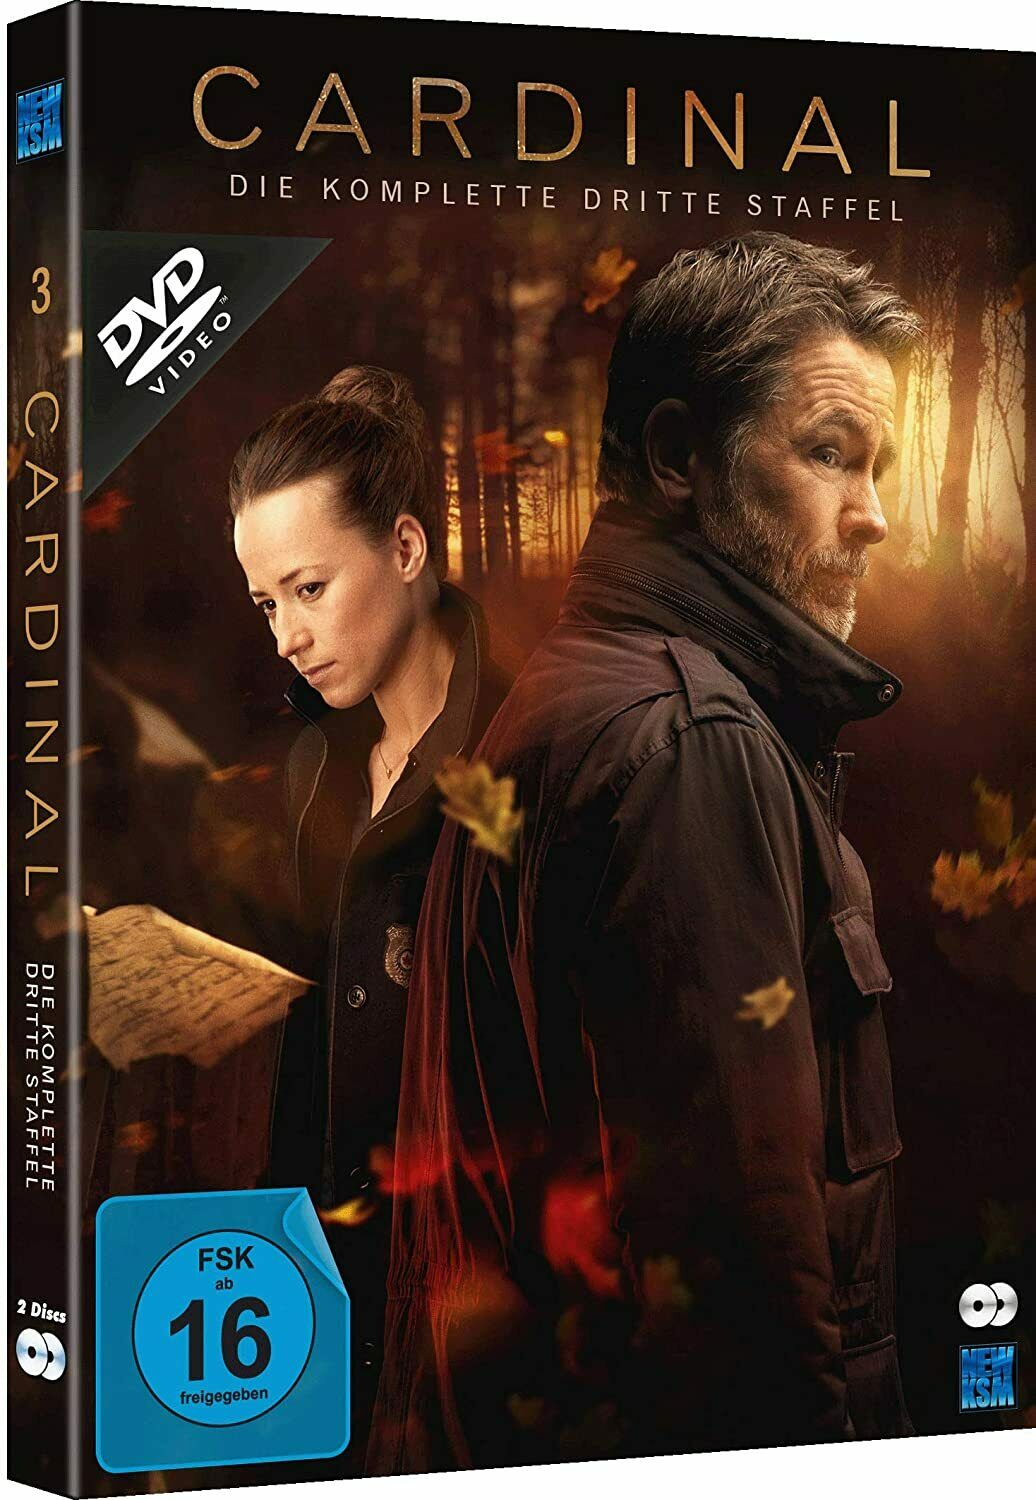 Cardinal Complete Season 3 Third Tv Serie Billy Campbell Uk Region 2 Dvd Pal For Sale Online Ebay